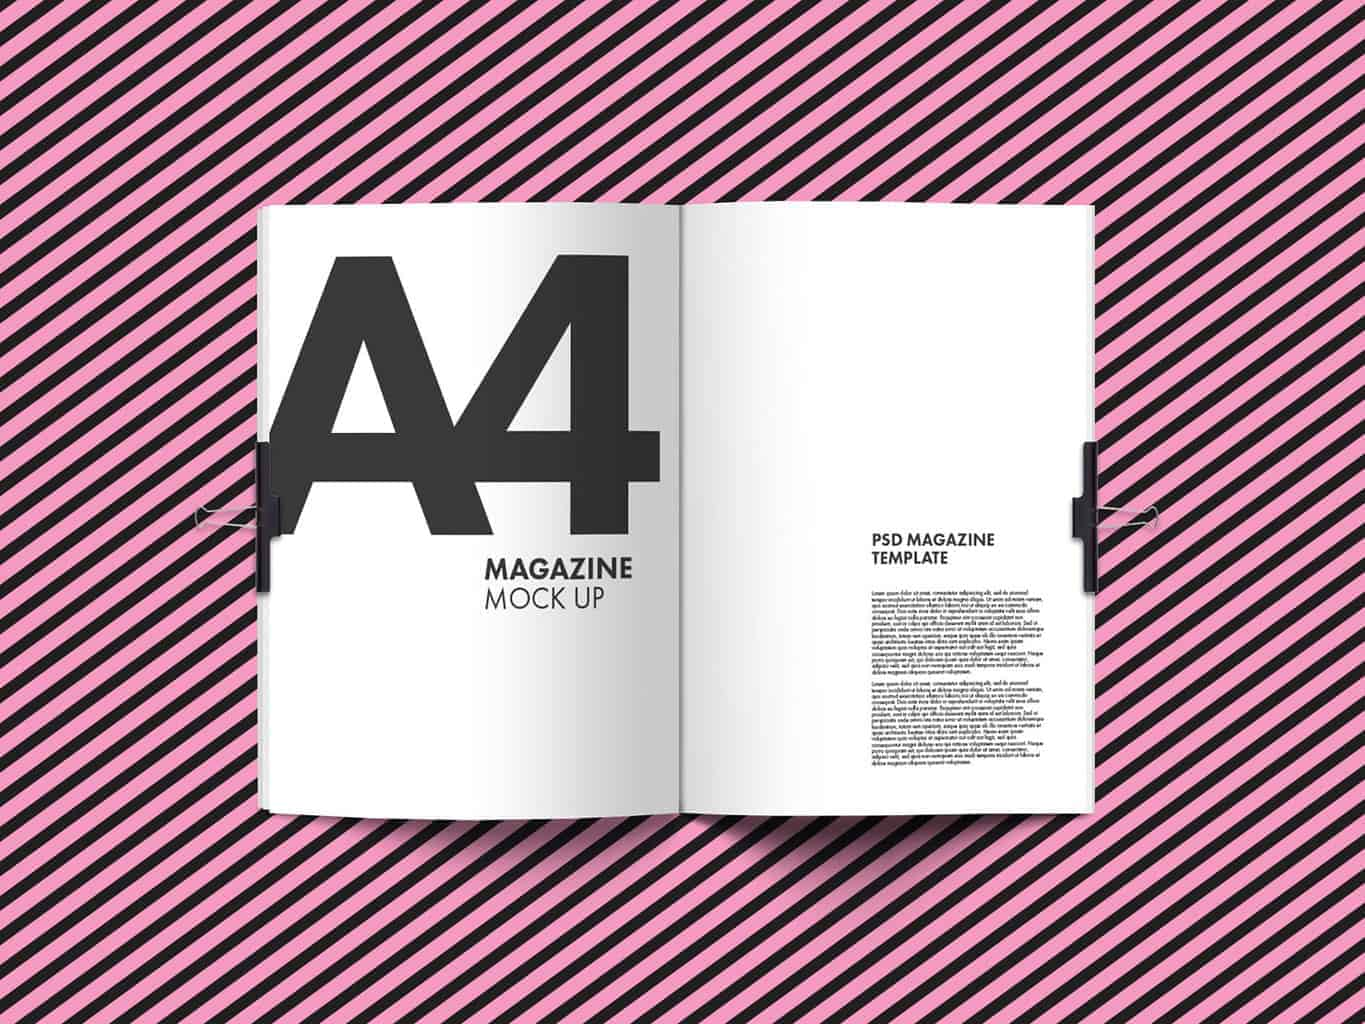 A4 Magazine Mock Up